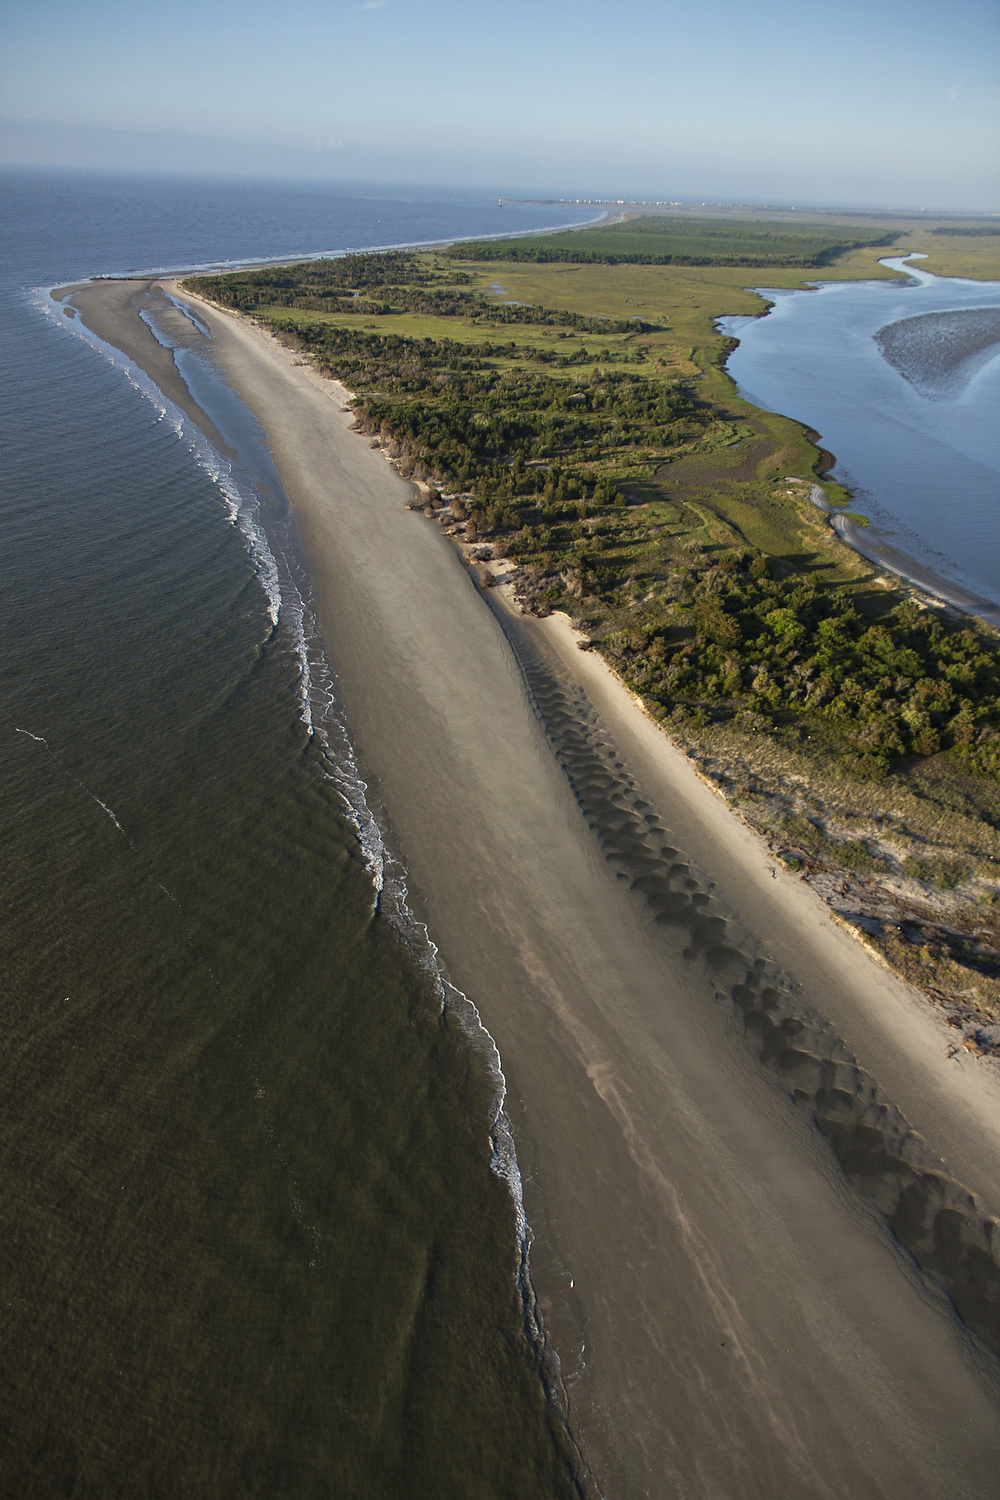 Aerial view of the beach and coastline of Morris Island in Charleston, South Carolina